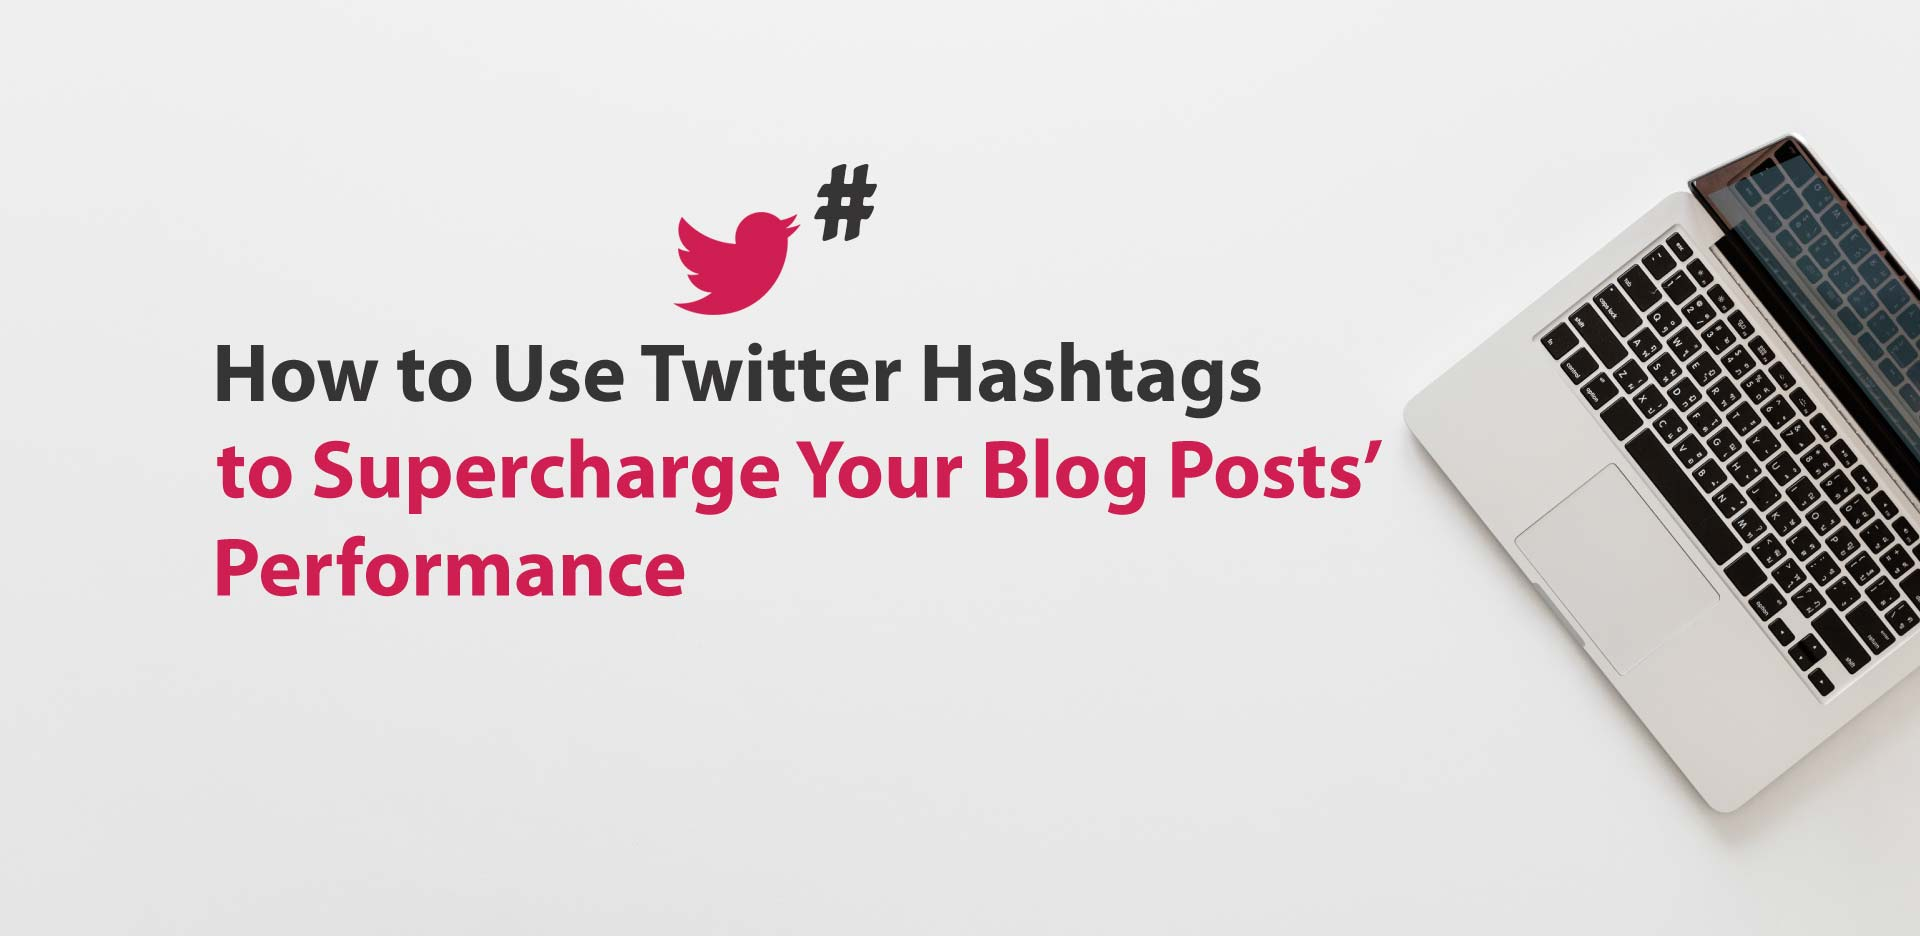 Twitter-hashtags-Supercharge-Blog-Posts-Performance